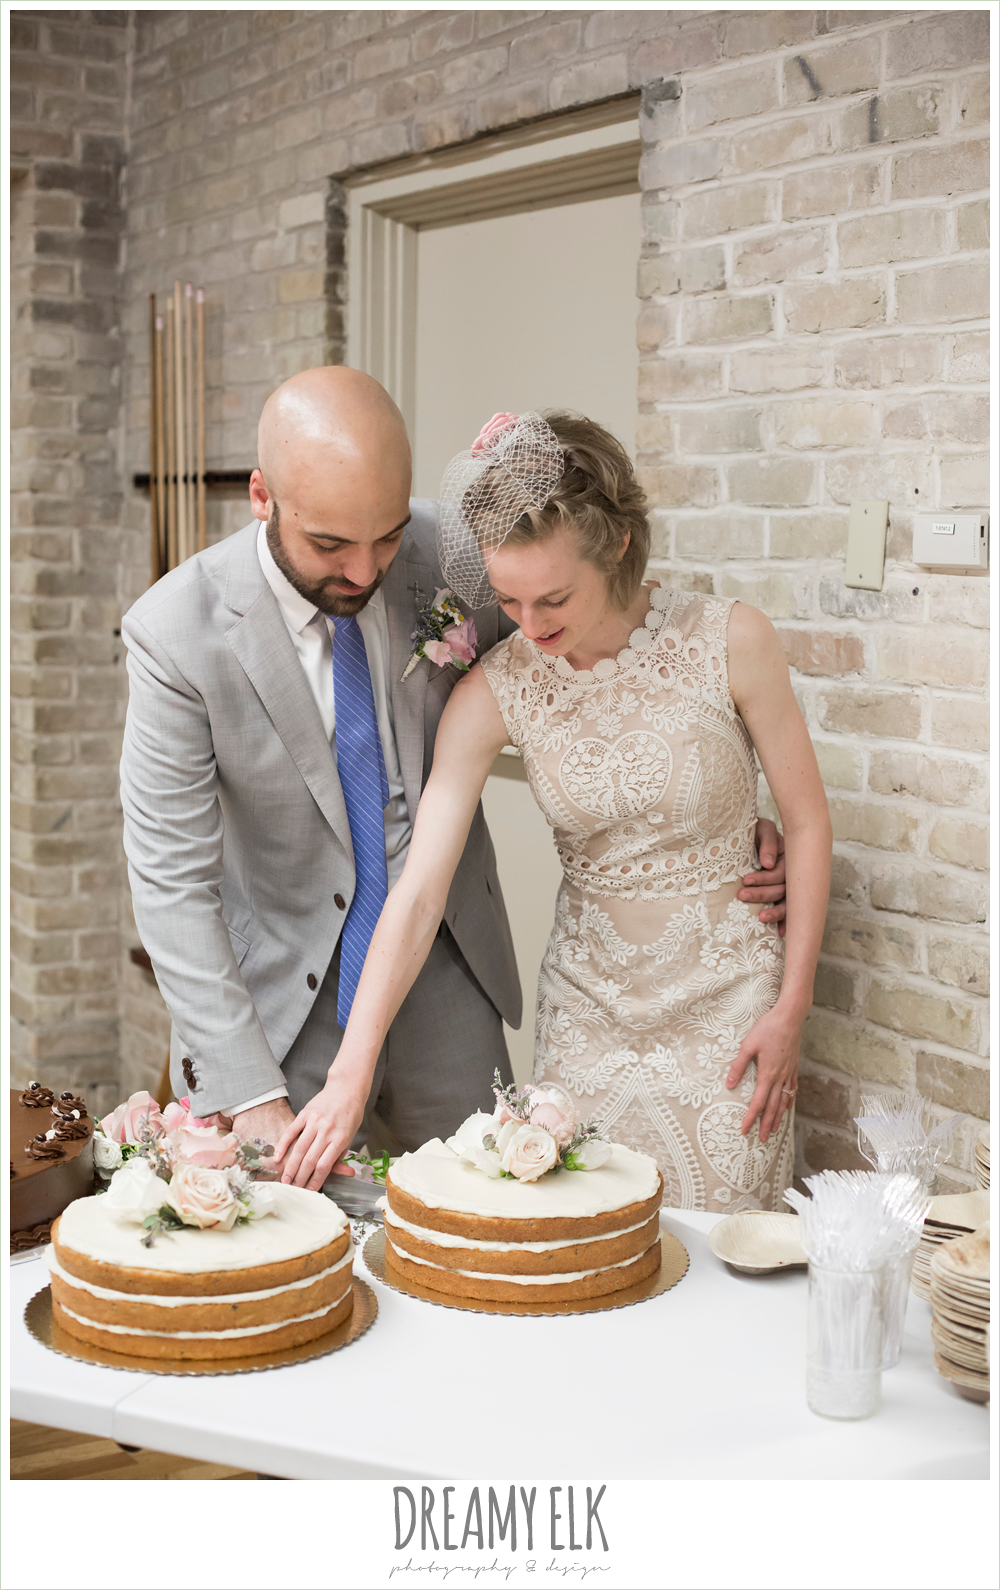 bride and groom cutting the cake, spring wedding, hancock community center hyde park, austin, texas {dreamy elk photography and design}